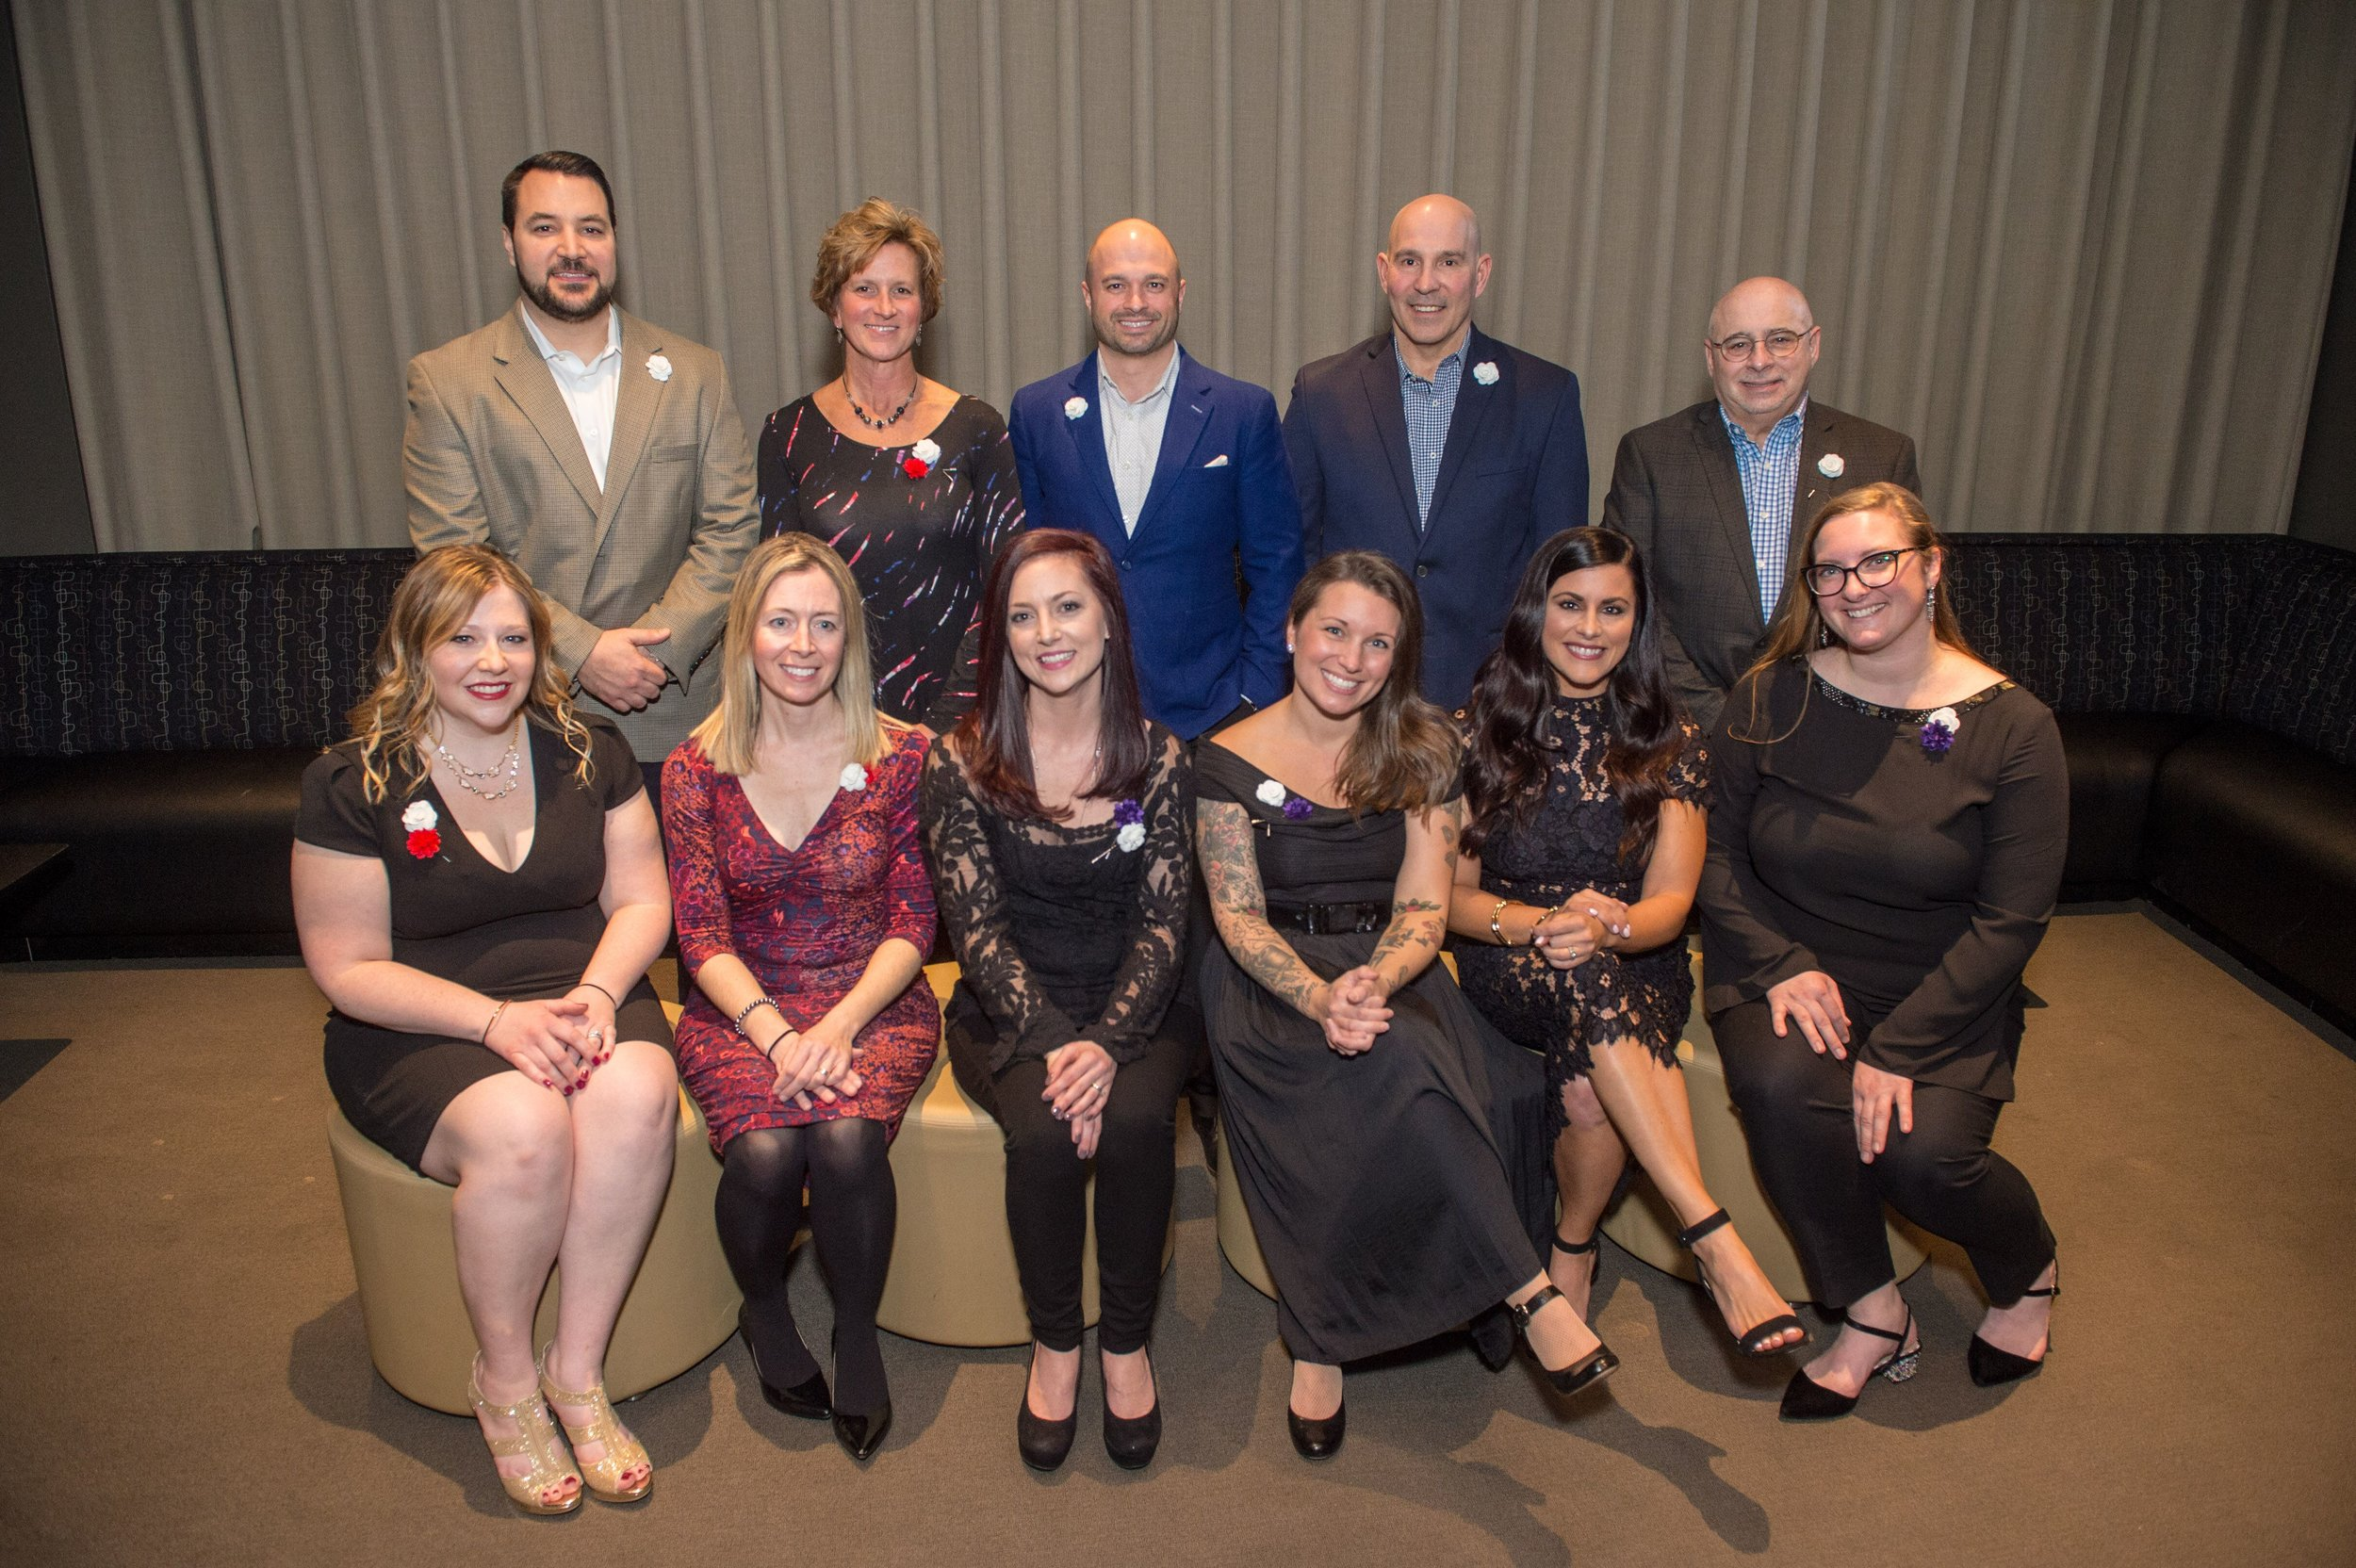 The 2018-2019 Board of Directors and Advisory Board at the 2019 Night for Babies Event